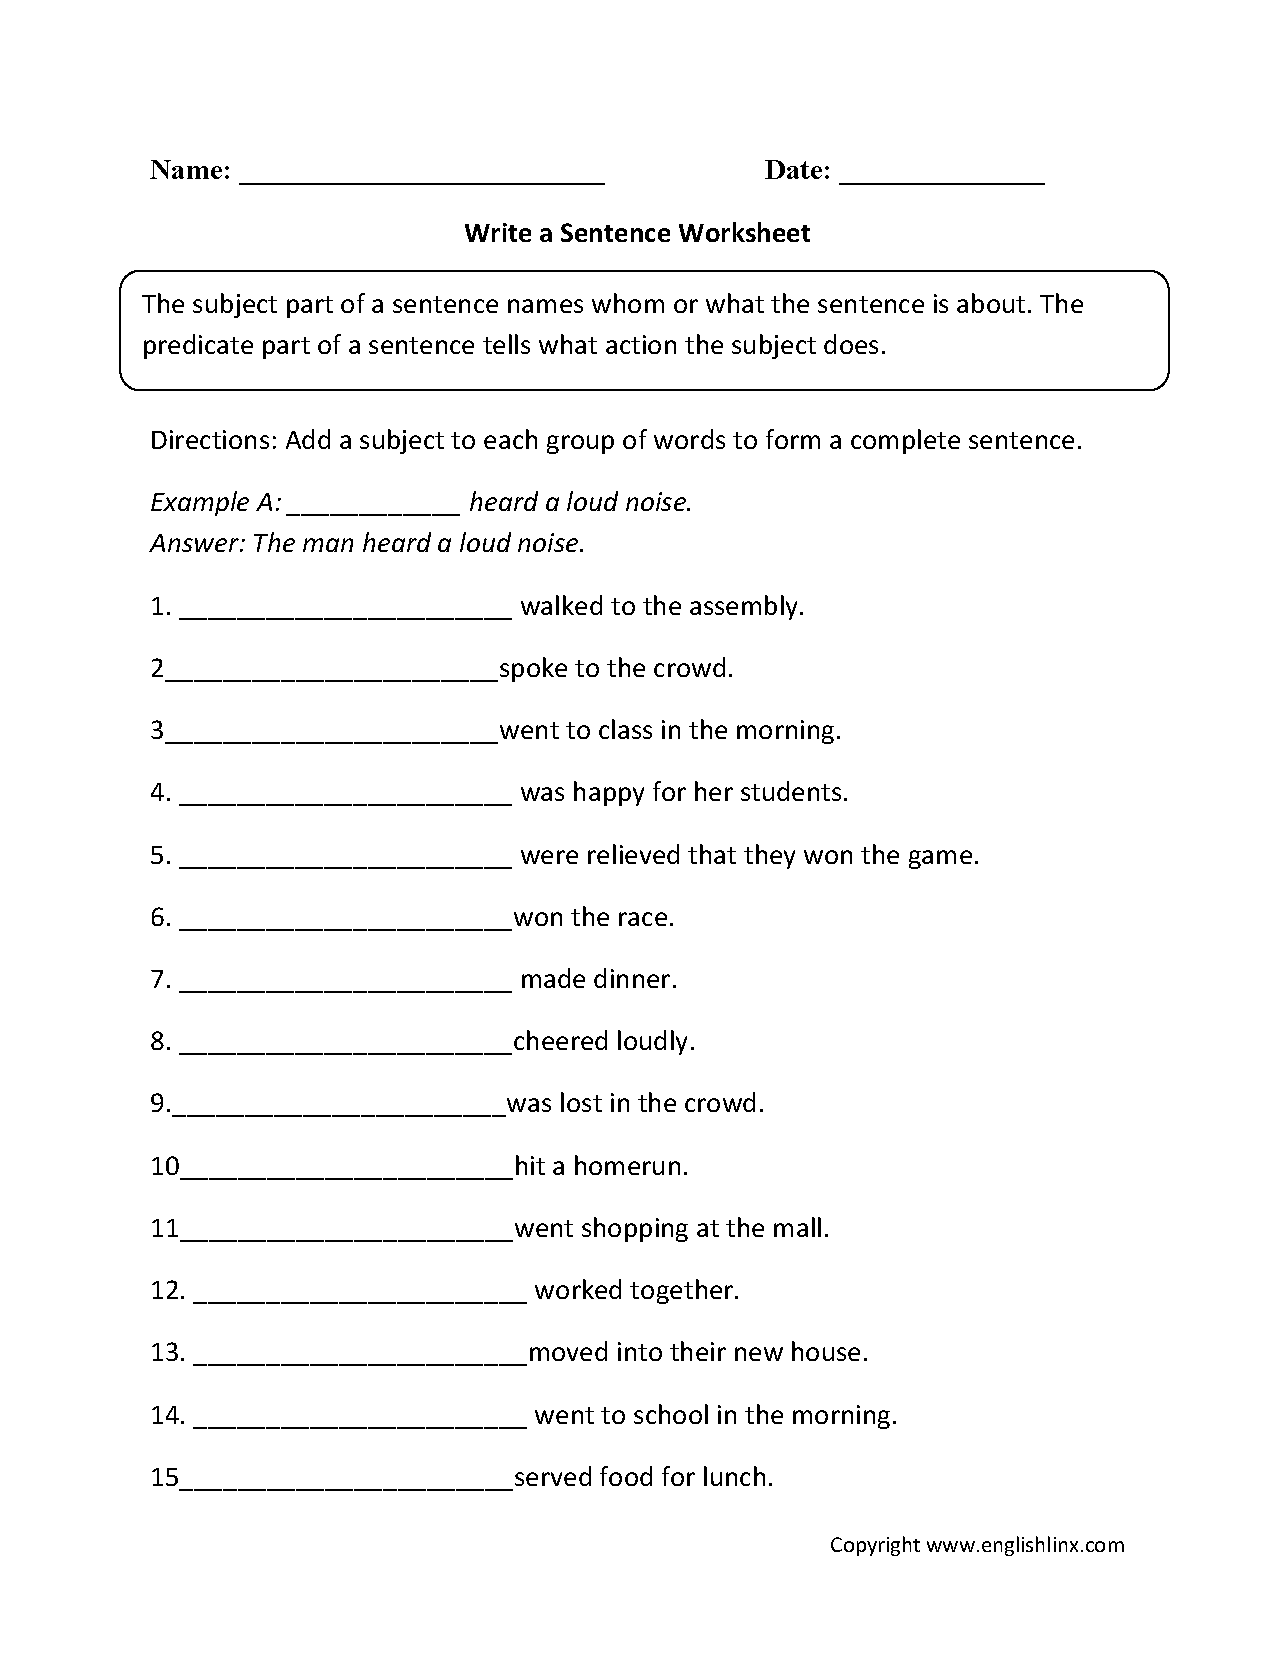 Worksheets Improving Sentence Structure Worksheets sentence structure worksheets building write a worksheet